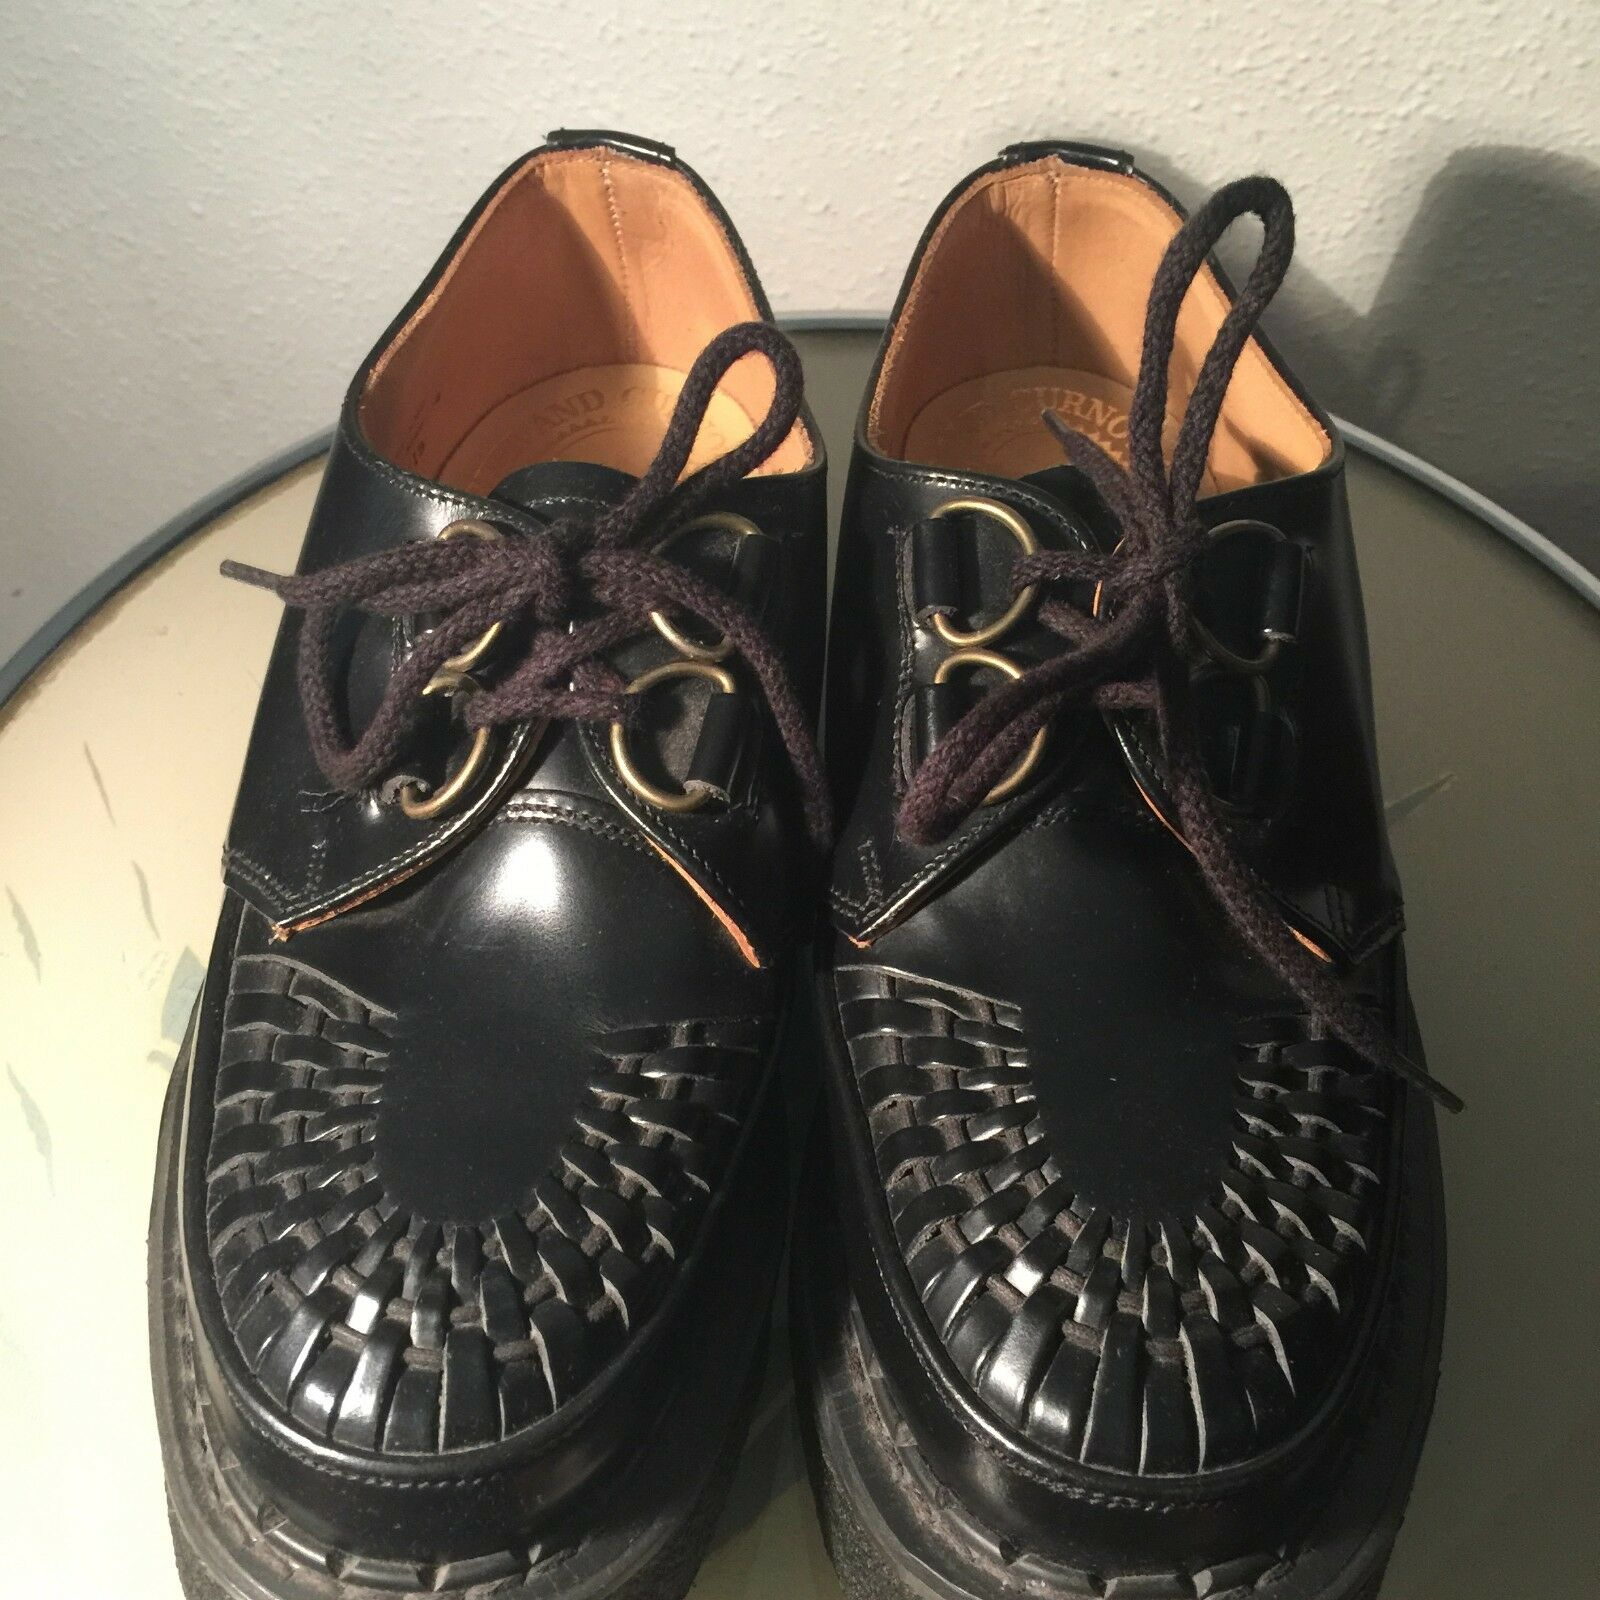 English leather chaussures D ring brougehel creepers UK 4 Rockabilly View Factory